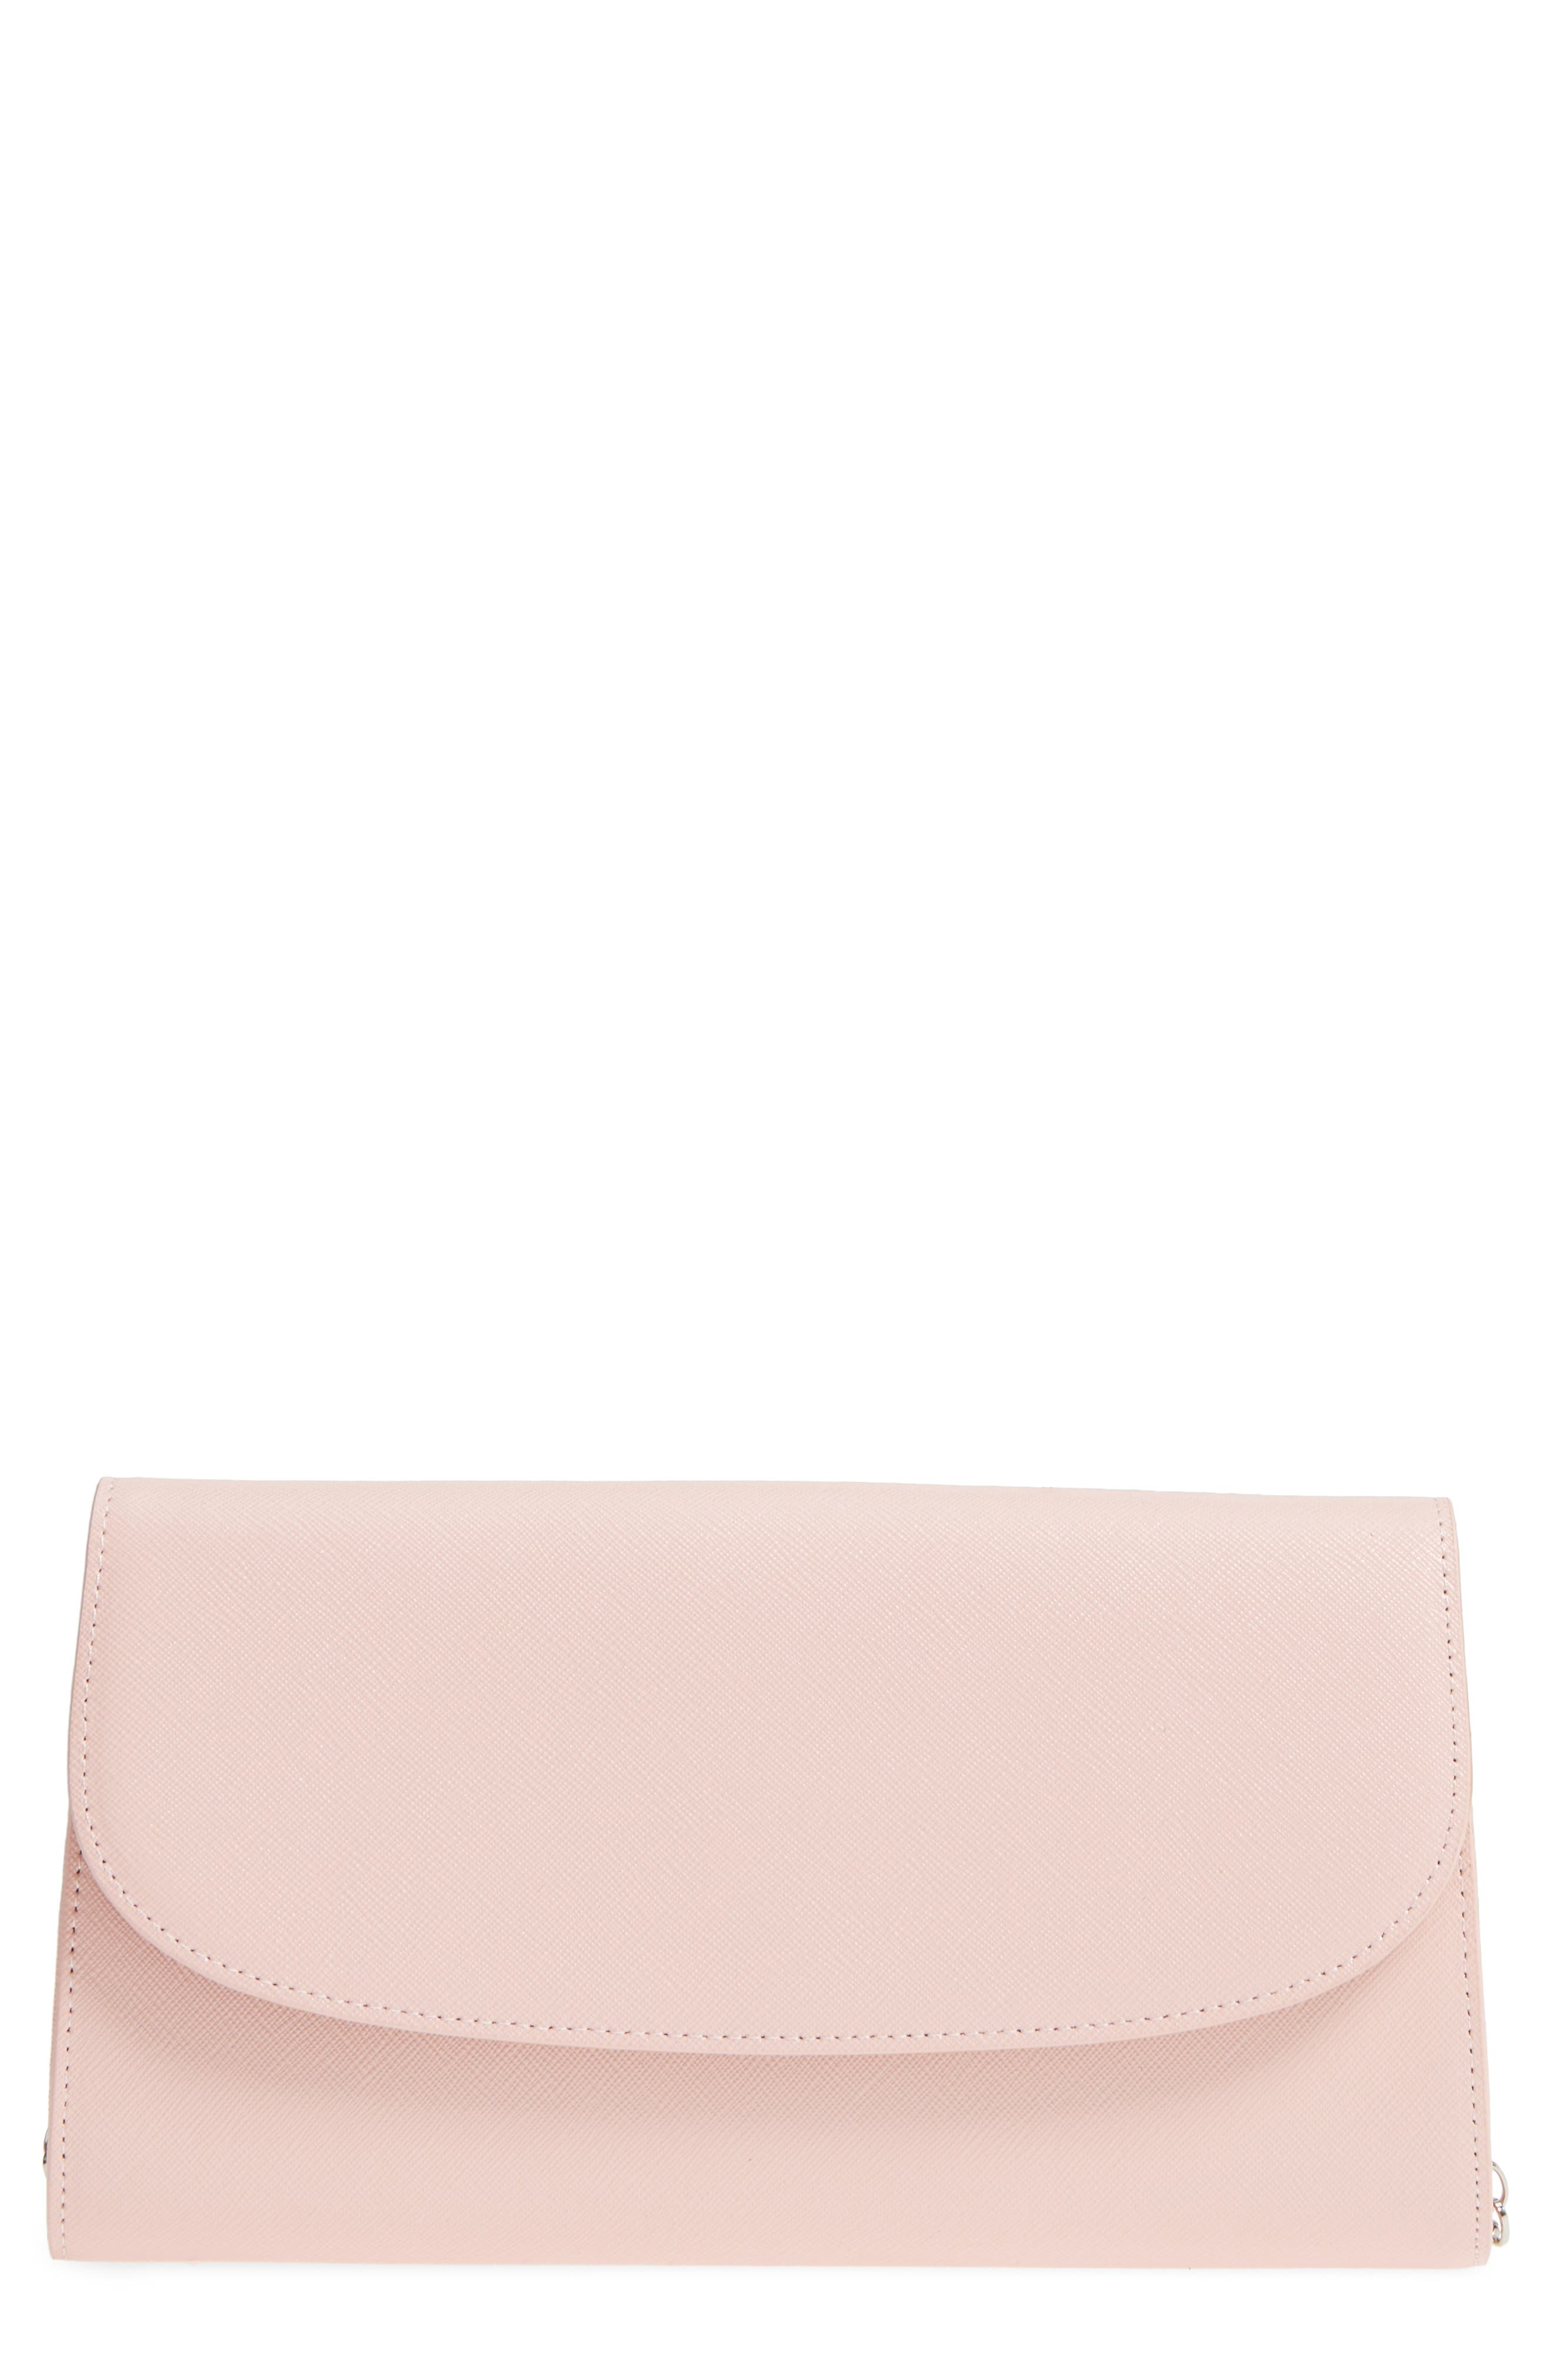 Main Image - Nordstrom Leather Clutch